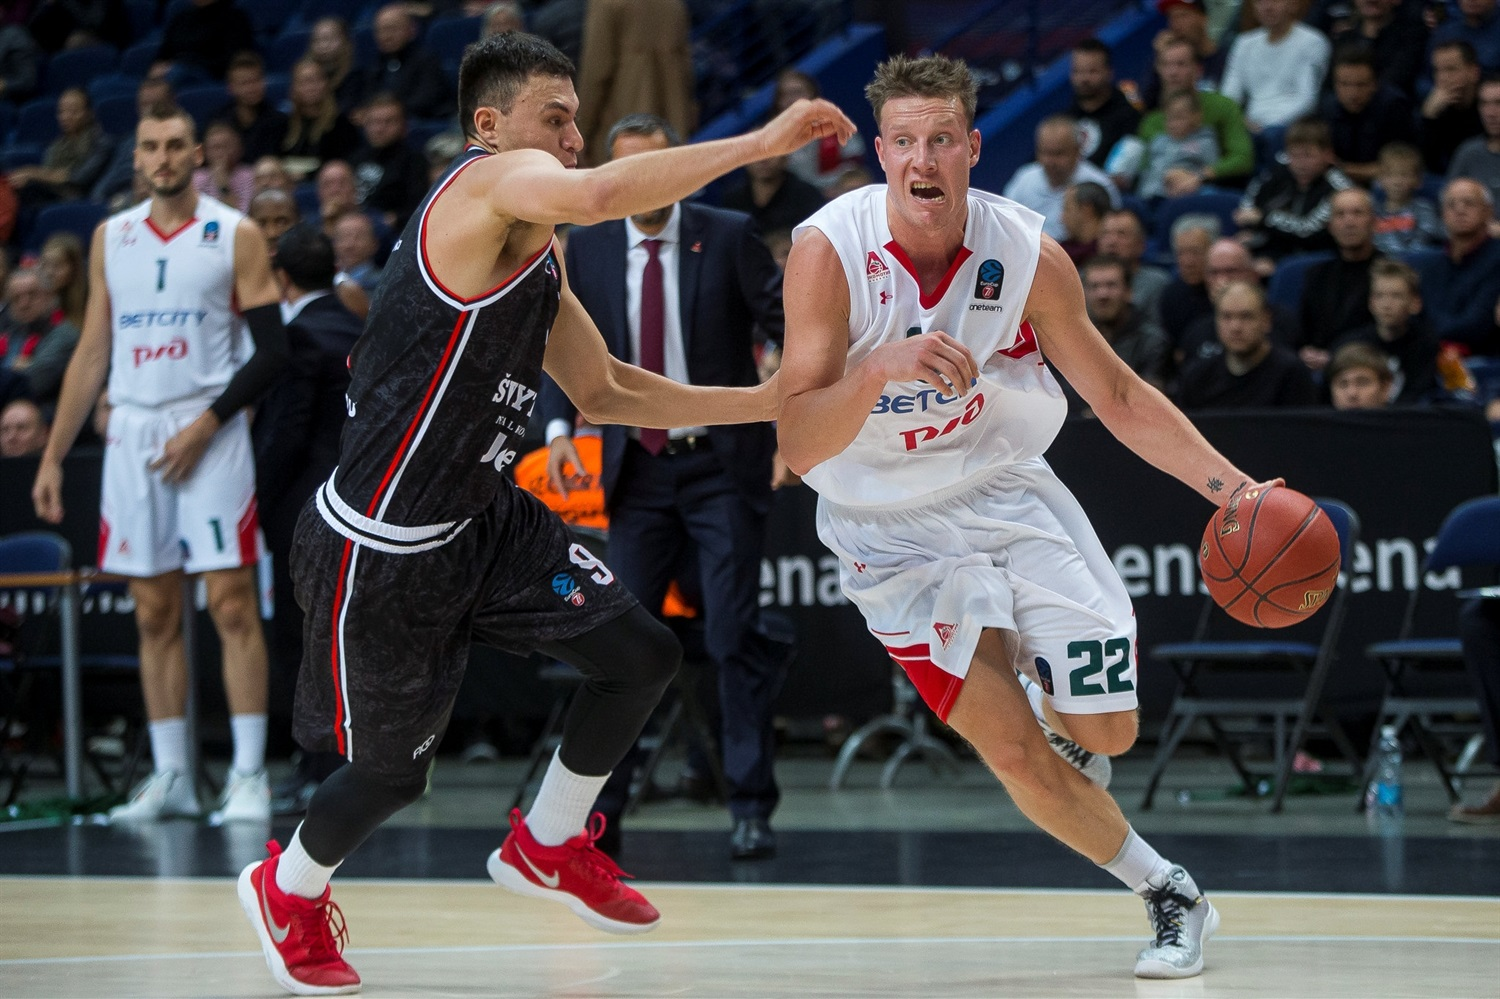 Dmitry Kulagin - Lokomotiv Kuban Krasnodar (photo Rytas) - EC19